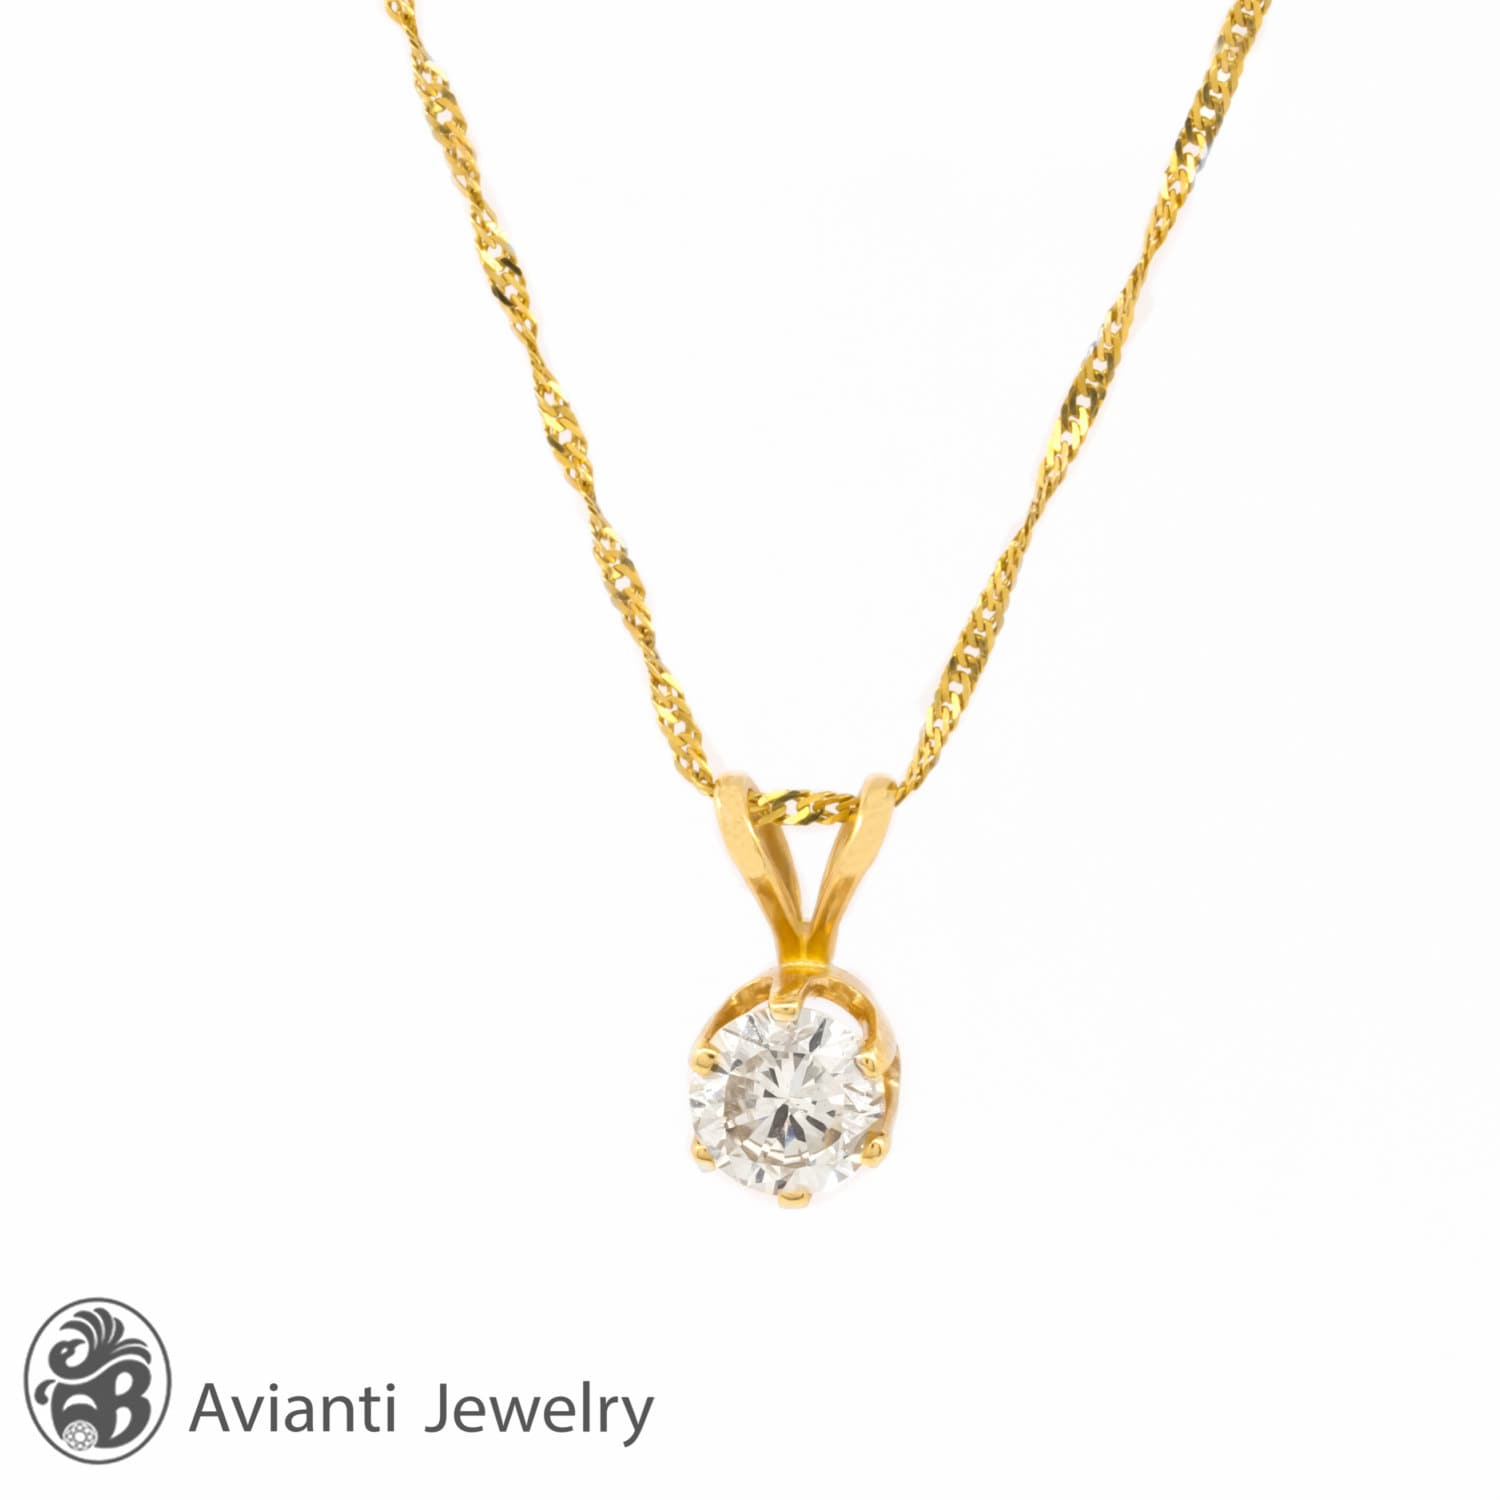 necklace solitaire carat within zironconia org cubic diamond cz